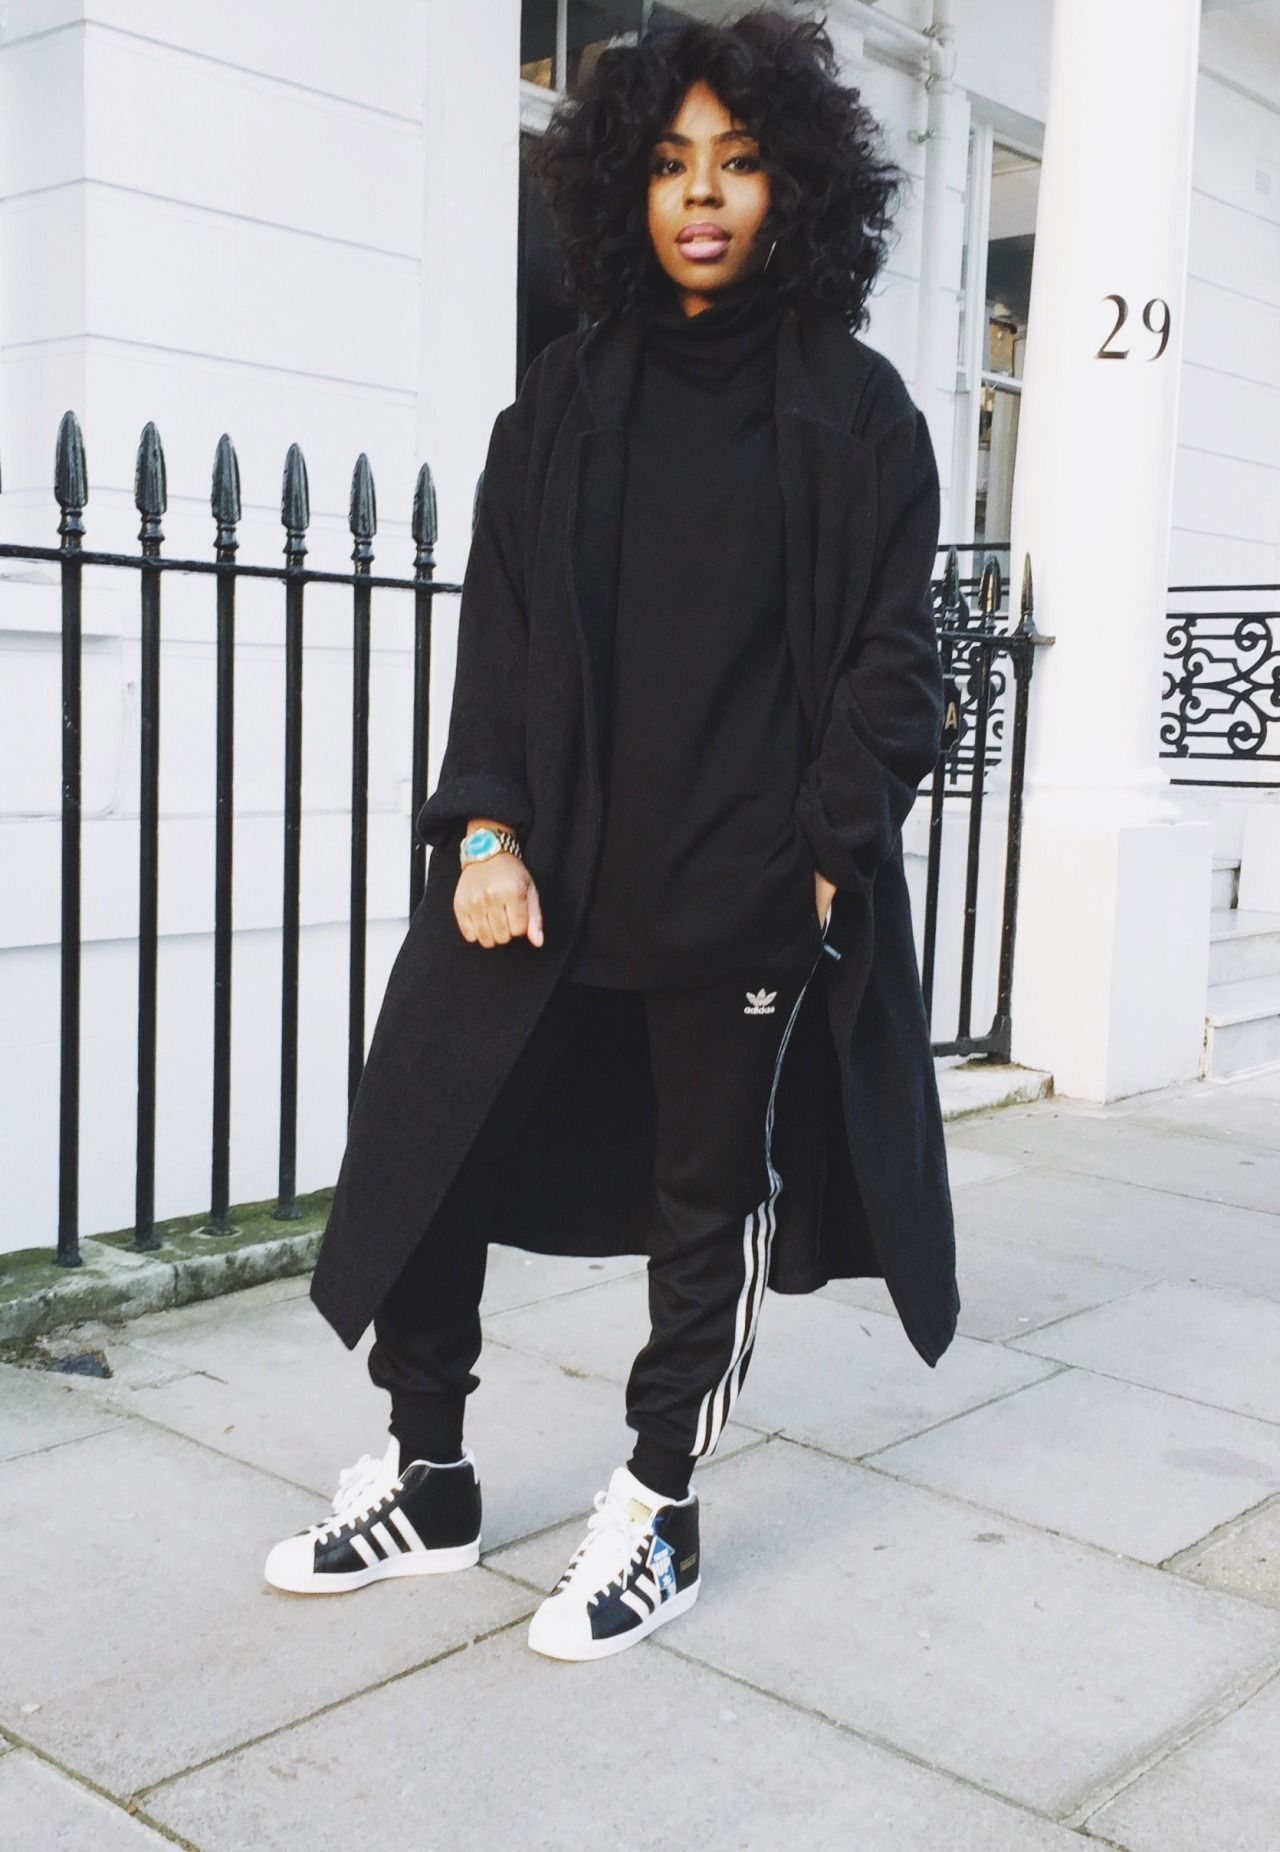 Adidas Outfit Afro Hair Winter Ouitfit Street Style Black Girl